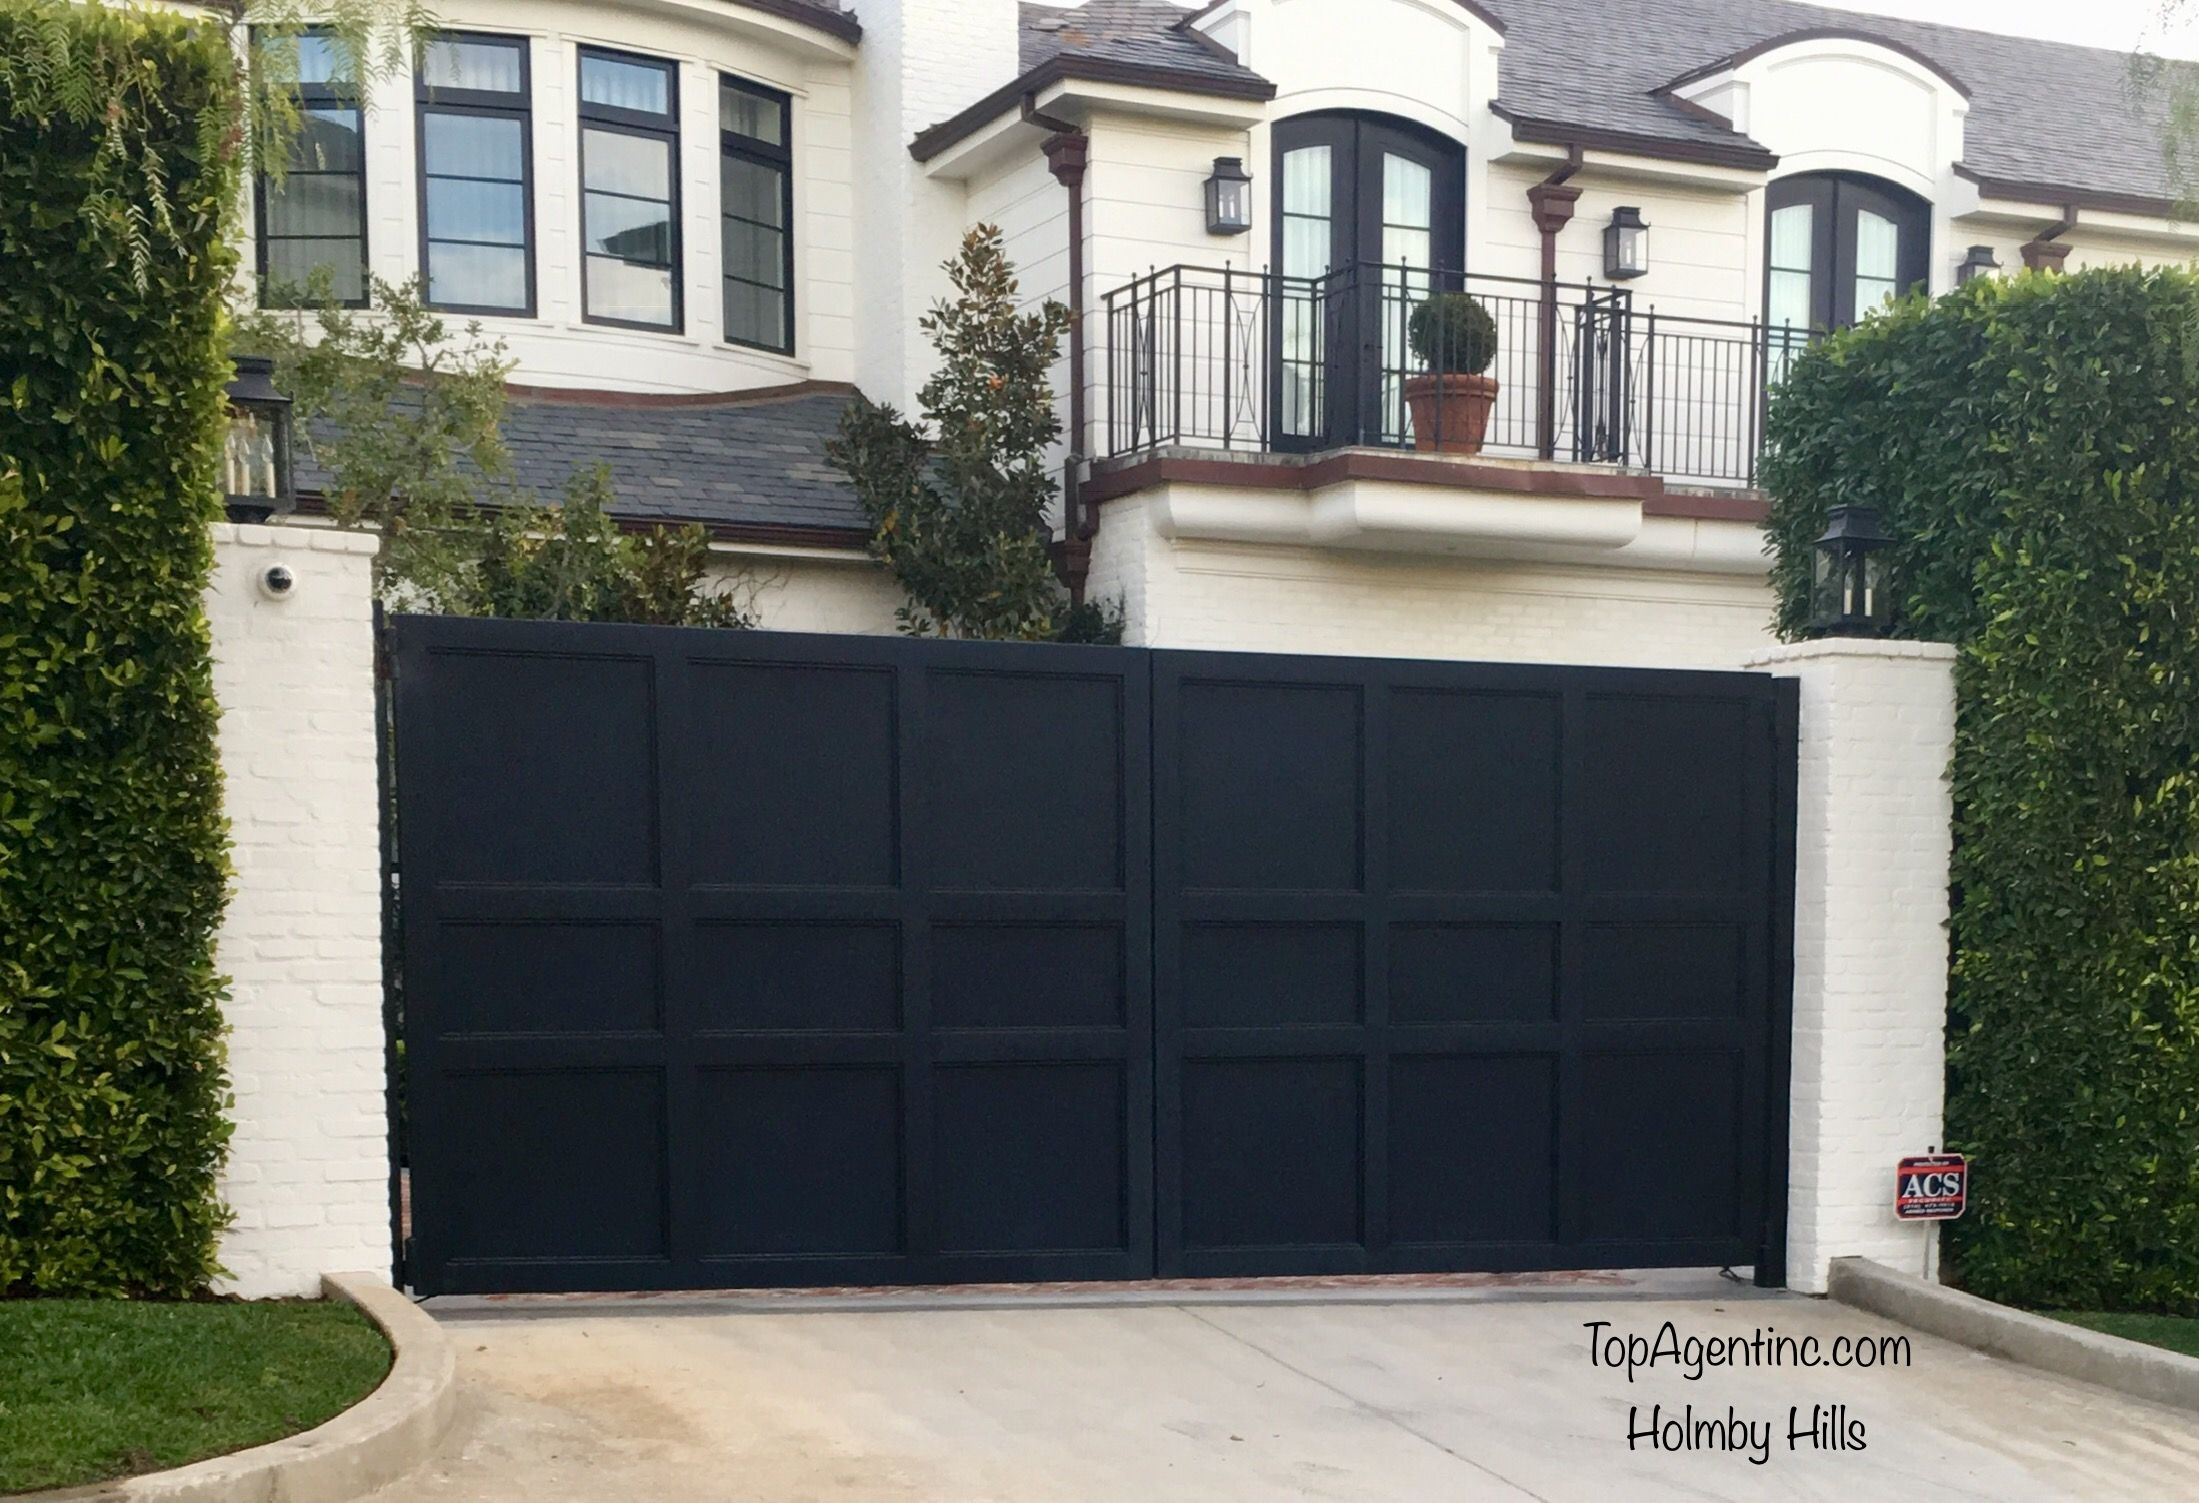 Black Solid Swing Gates With Square Plank Lines California Real Estate Dream House Real Estate Sales